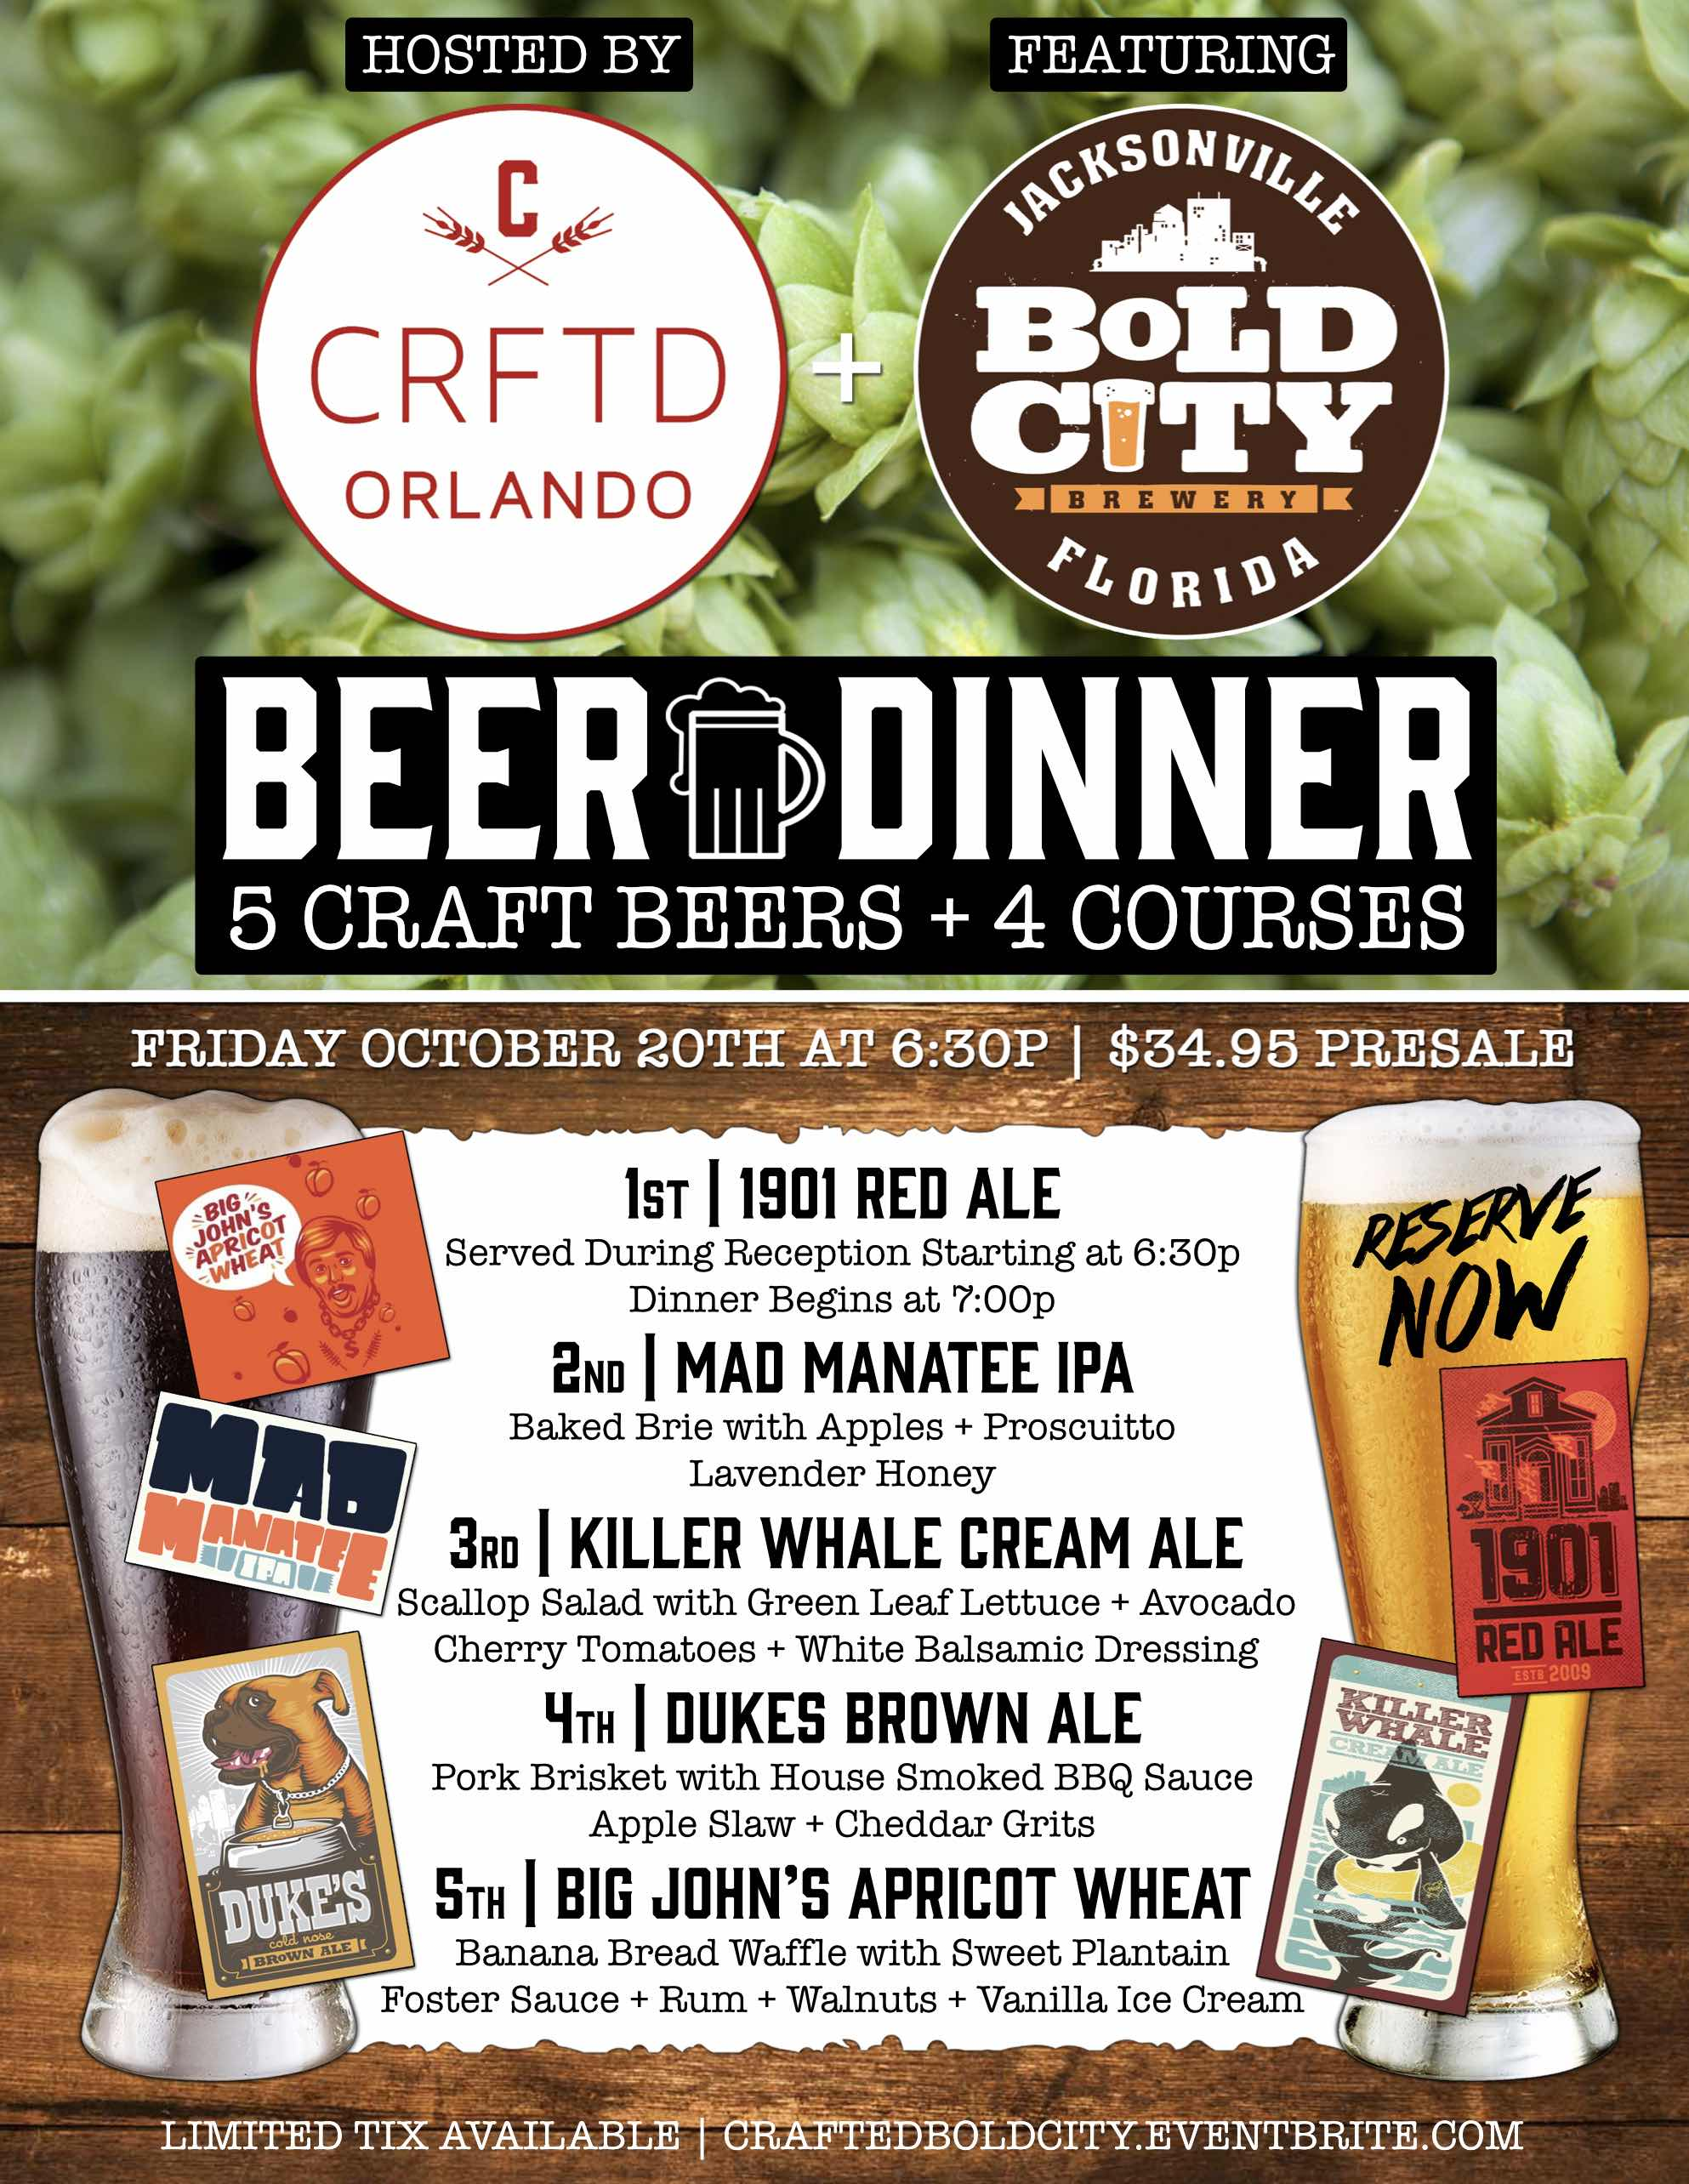 Crafted & Bold City Beer Dinner